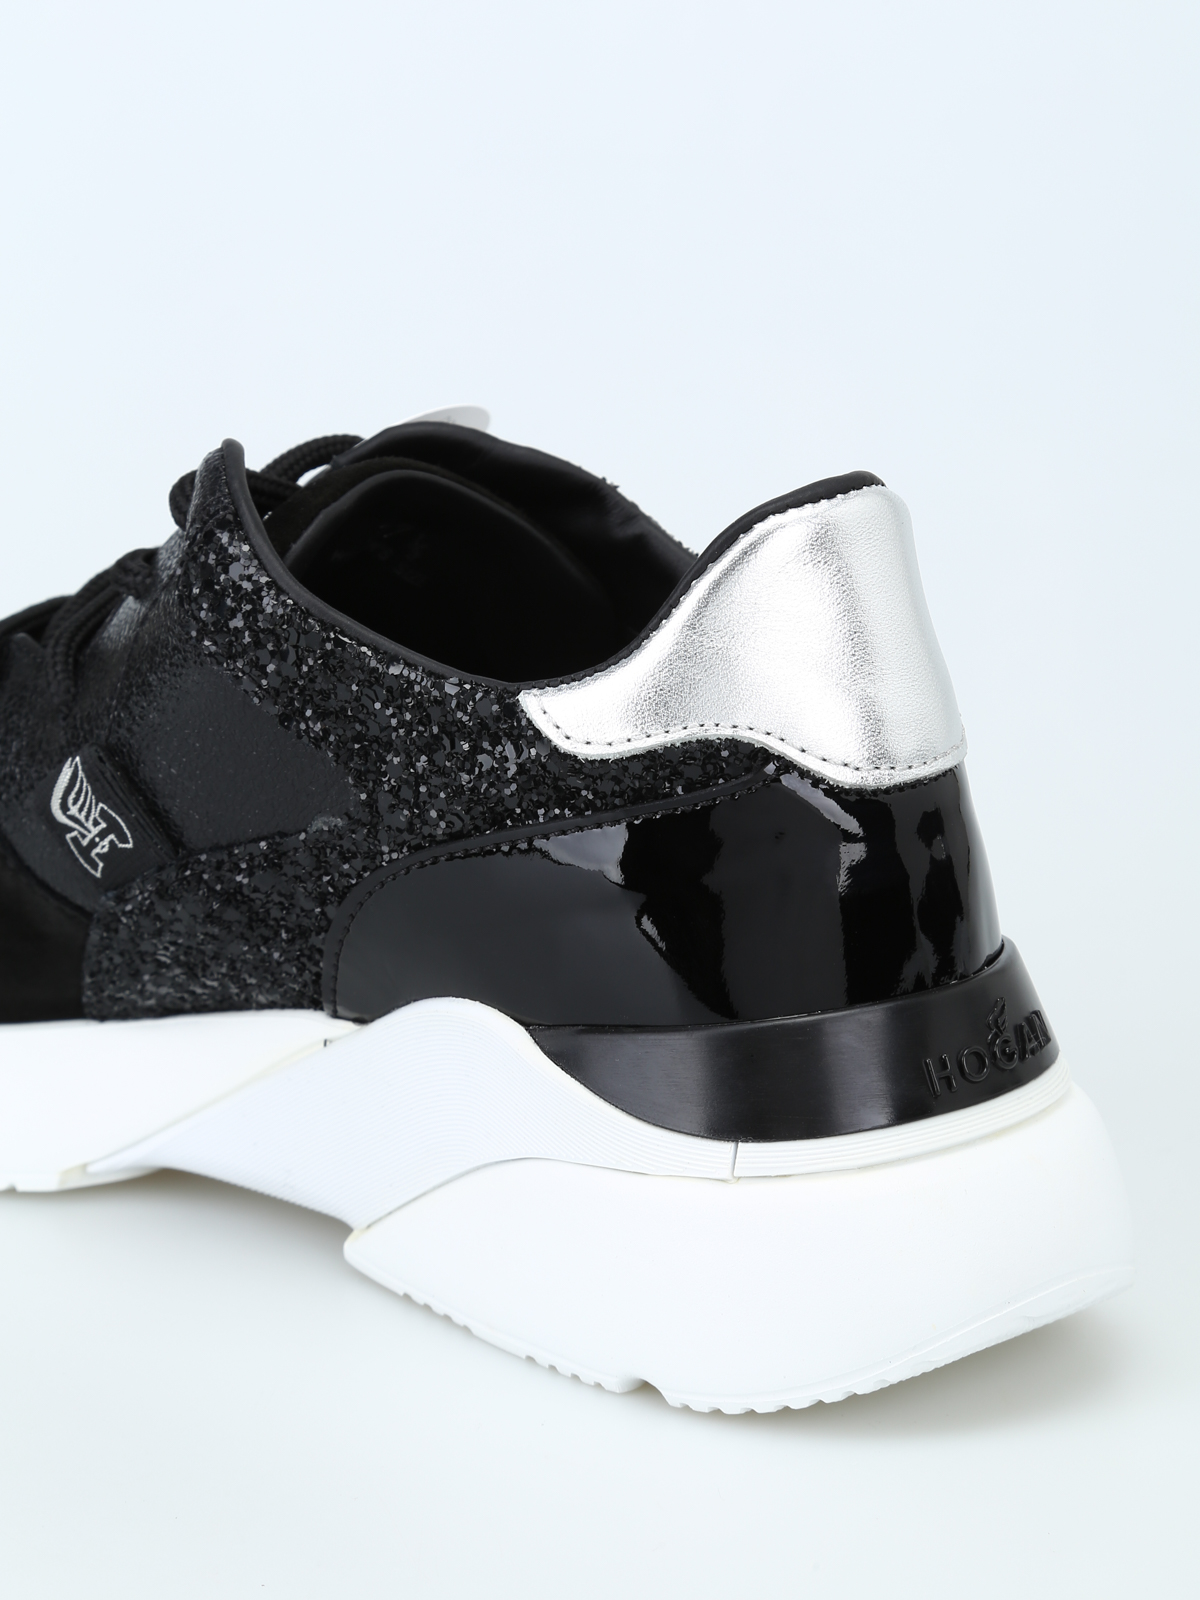 Trainers Hogan - Active One black sneakers - HXW3850AT40JNA0353